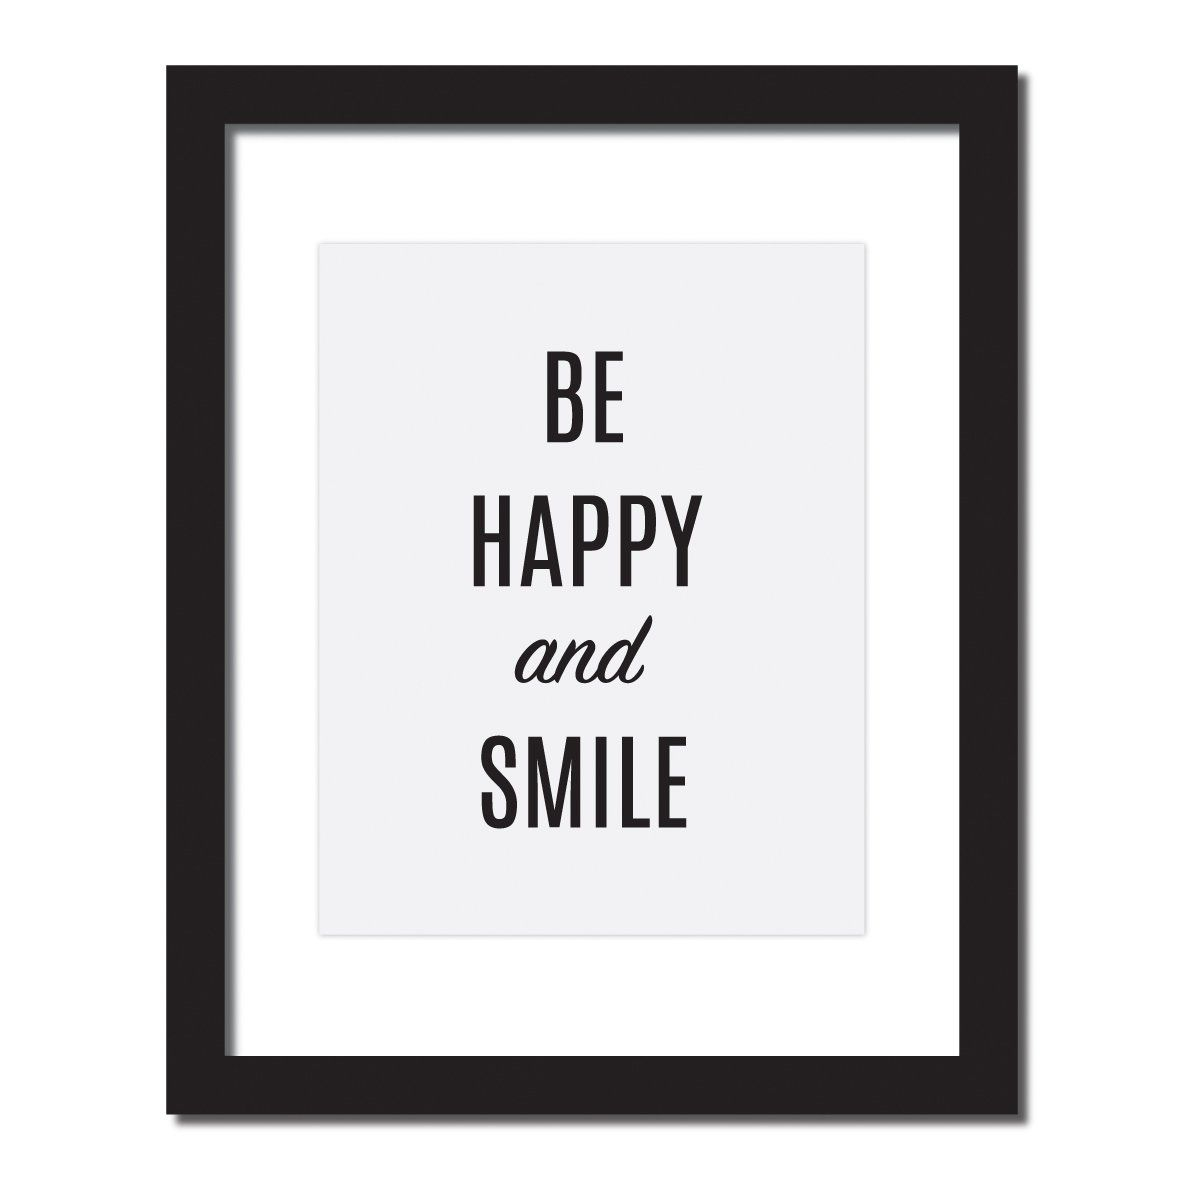 'Be Happy and Smile' Inspirational Quote Print . UNFRAMED. Hang this beautiful 'Be Happy and Smile' inspirational print on your wall. Original artwork, digitally printed on high - quality matte paper. • MEDIUM: fine art print • SIZE: the size you choose at checkout with full bleed • PAPER: Heavy, premium 270 gsm archival matte paper, acid-free • FINISH: Matte, very slightly textured • PAPER COLOR: Natural White • MADE IN USA Frame is not included. Ships flat. MADE IN USA Frame is not...